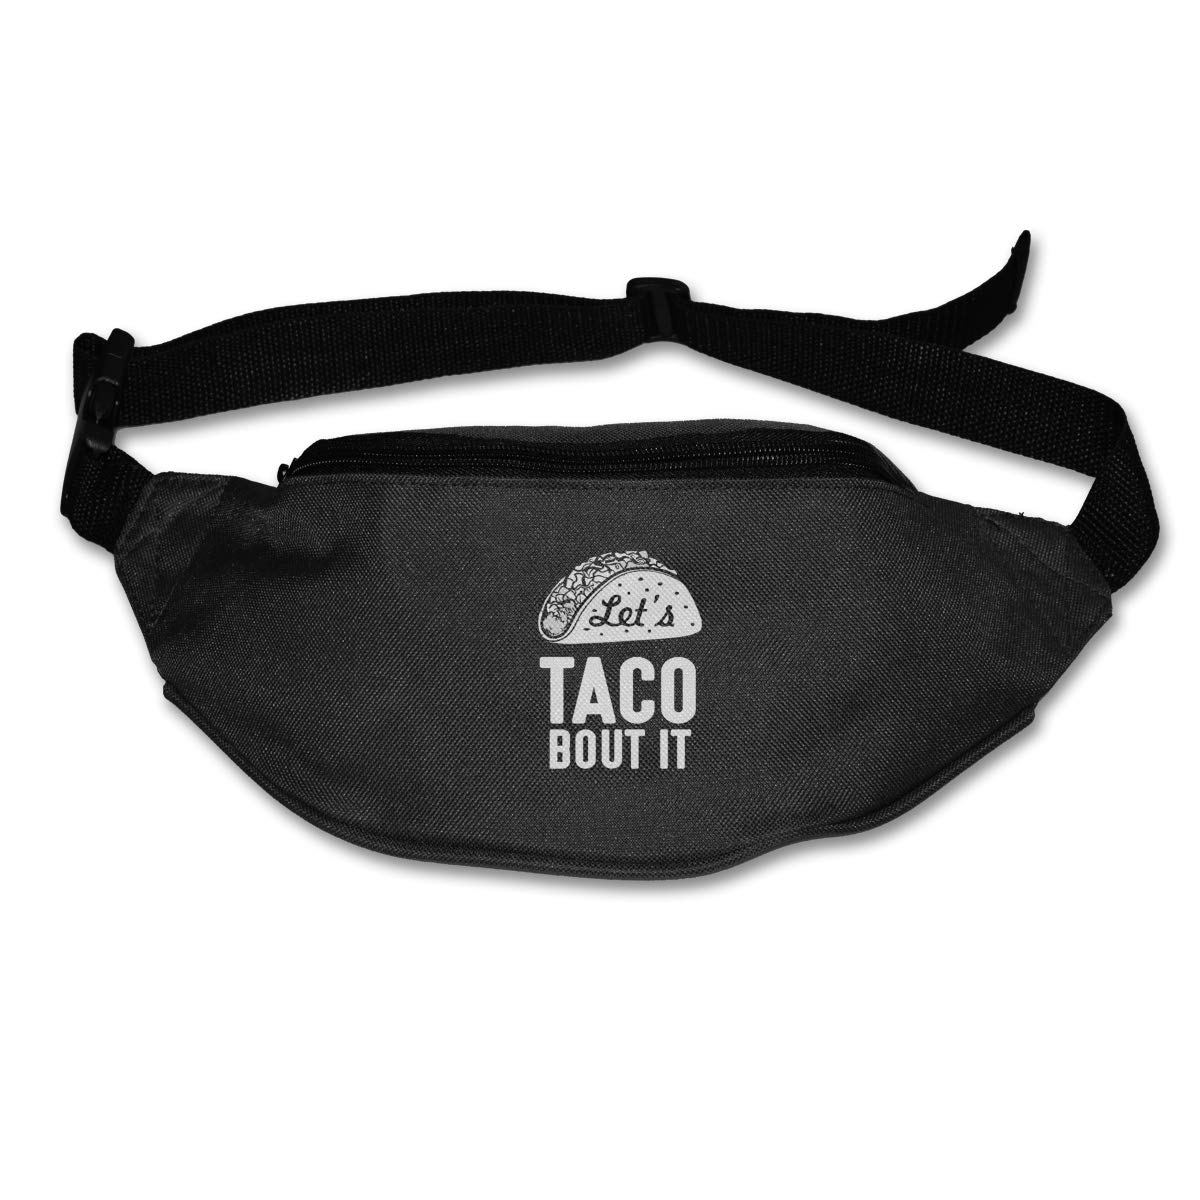 Taco Tuesday About It Sport Waist Bag Fanny Pack Adjustable For Hike